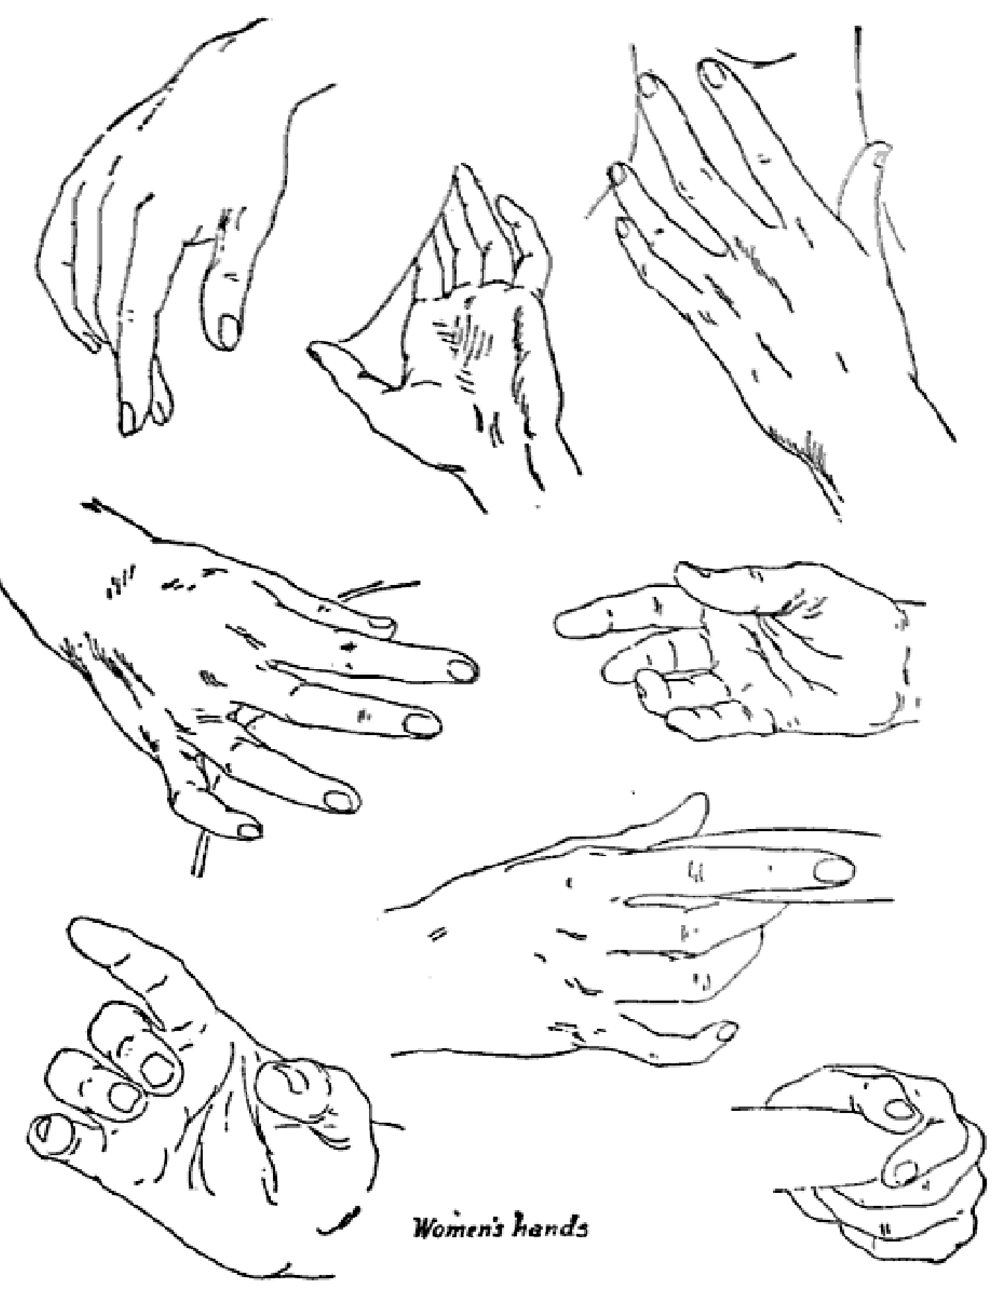 Drawn women different : With References Poses Hands